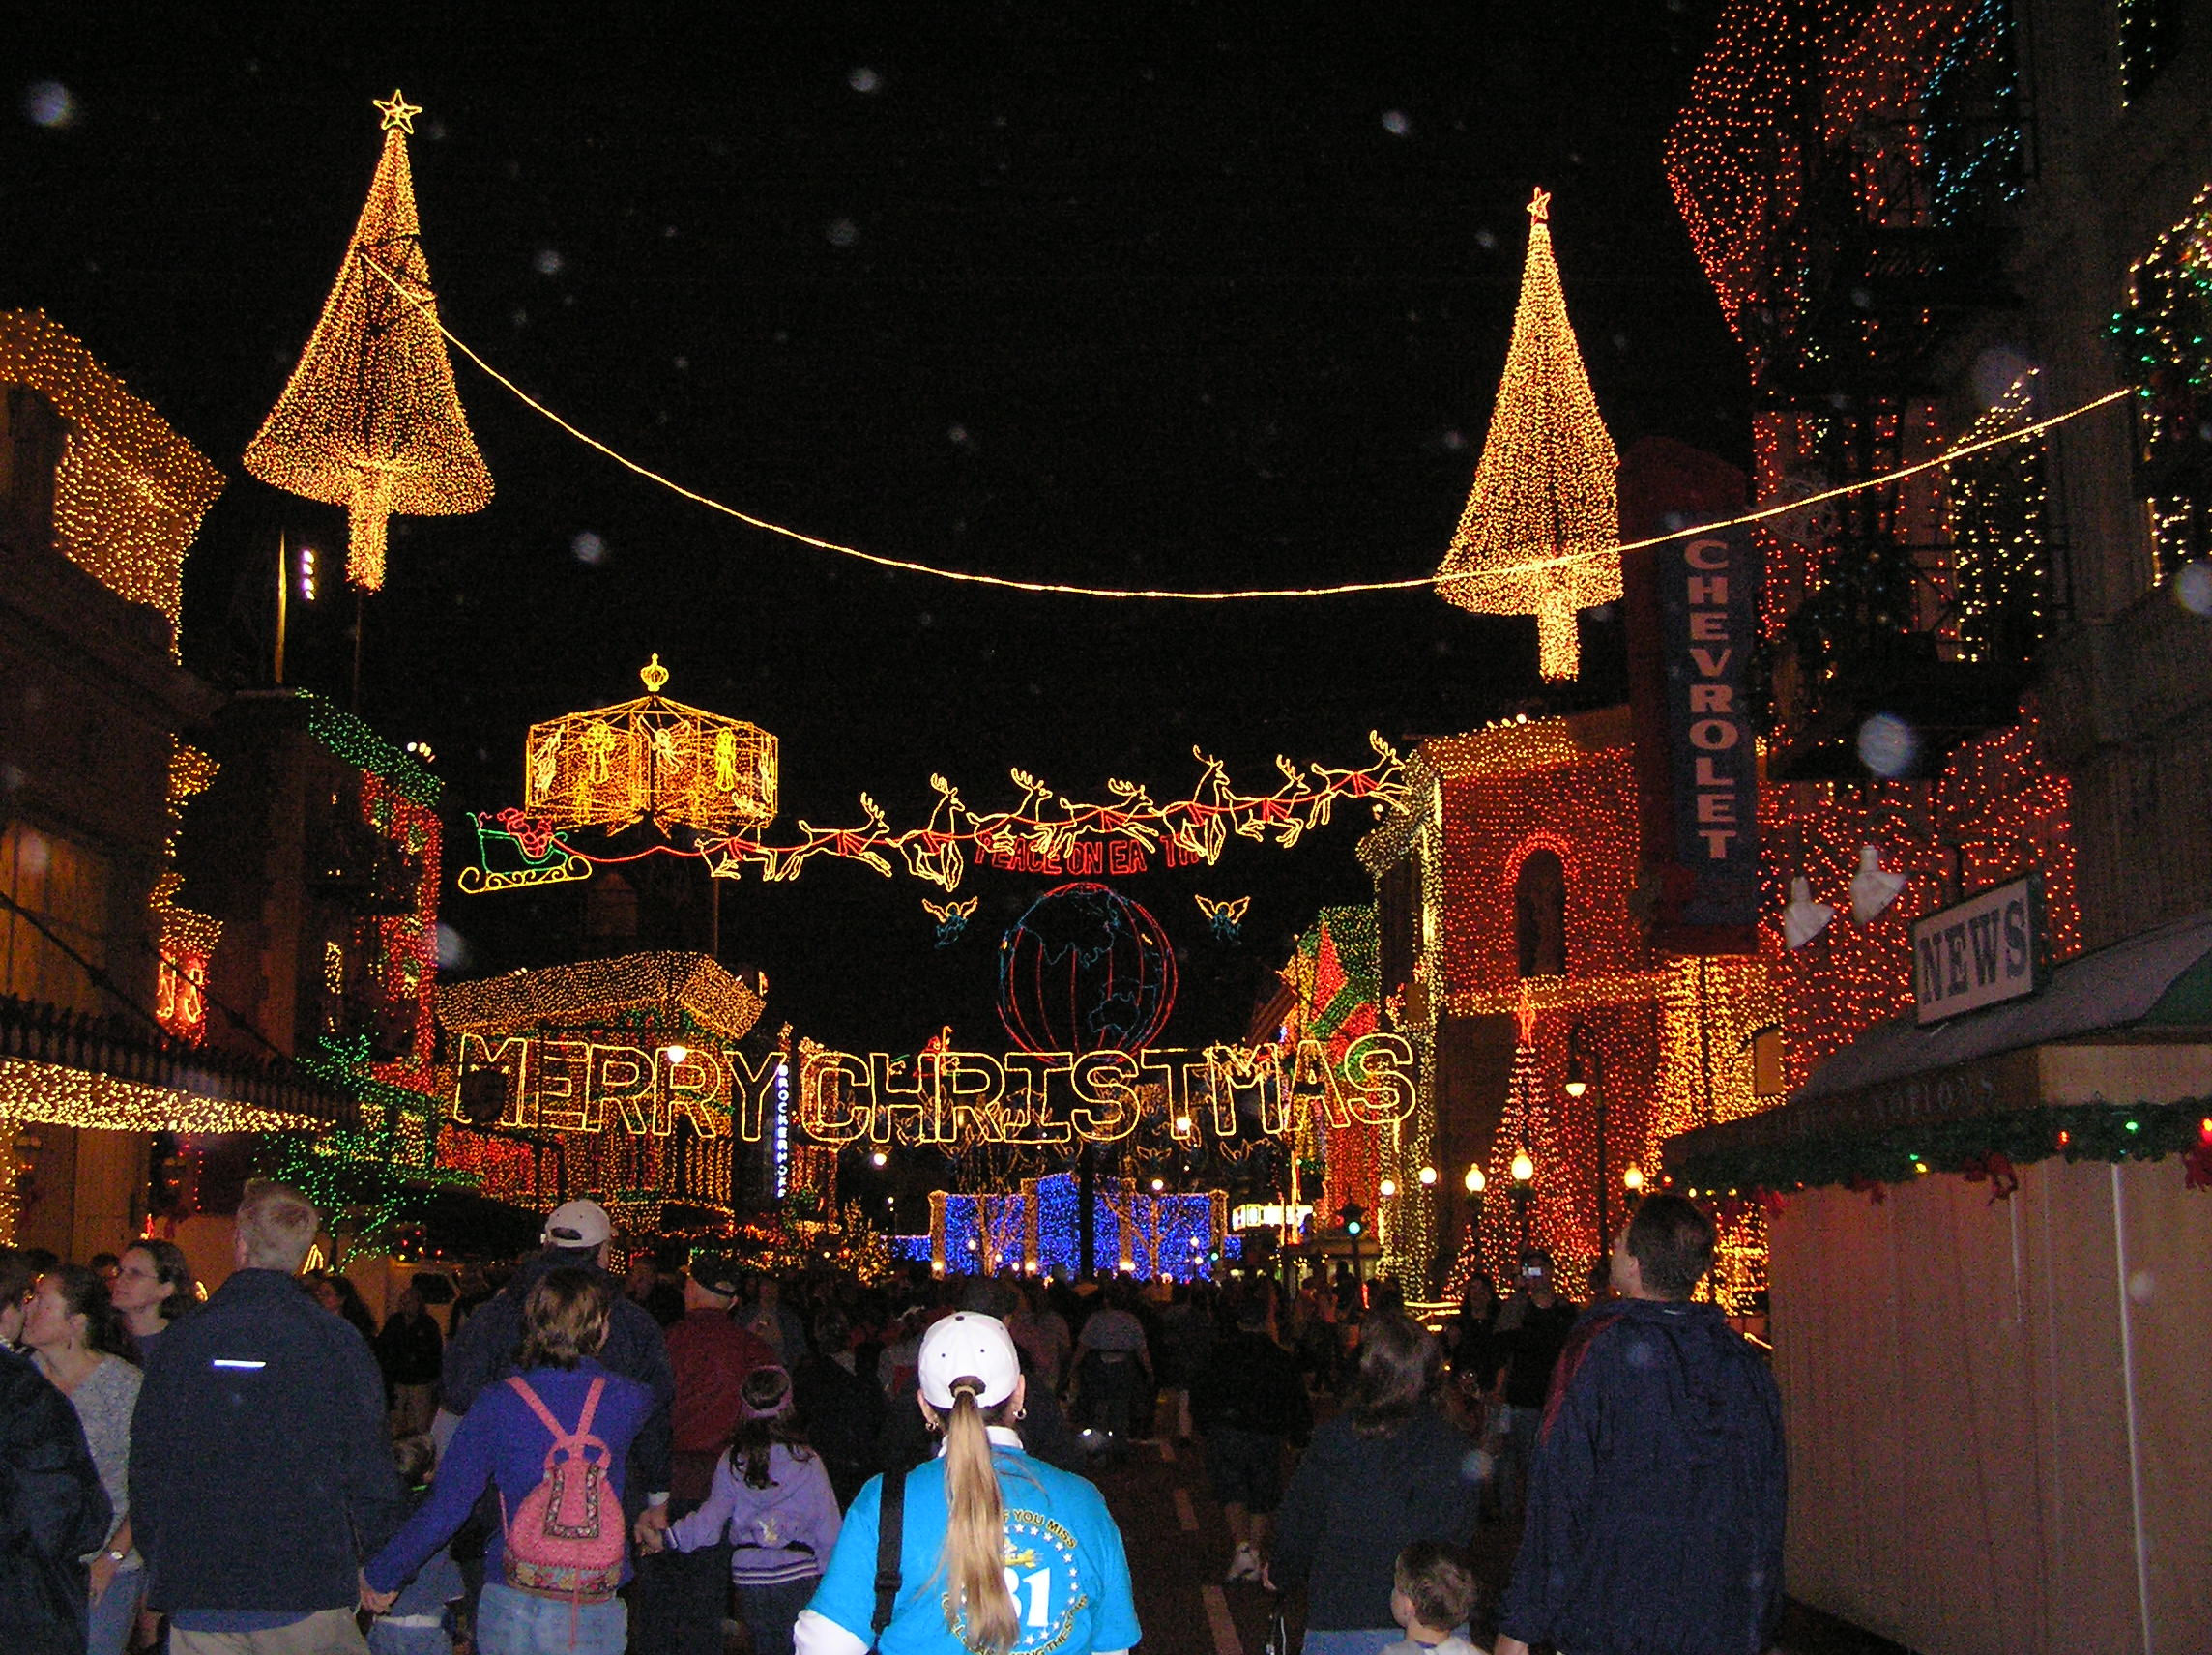 Another shot from The Osborne Family Spectacle of Lights at Disney's MGM Studios.